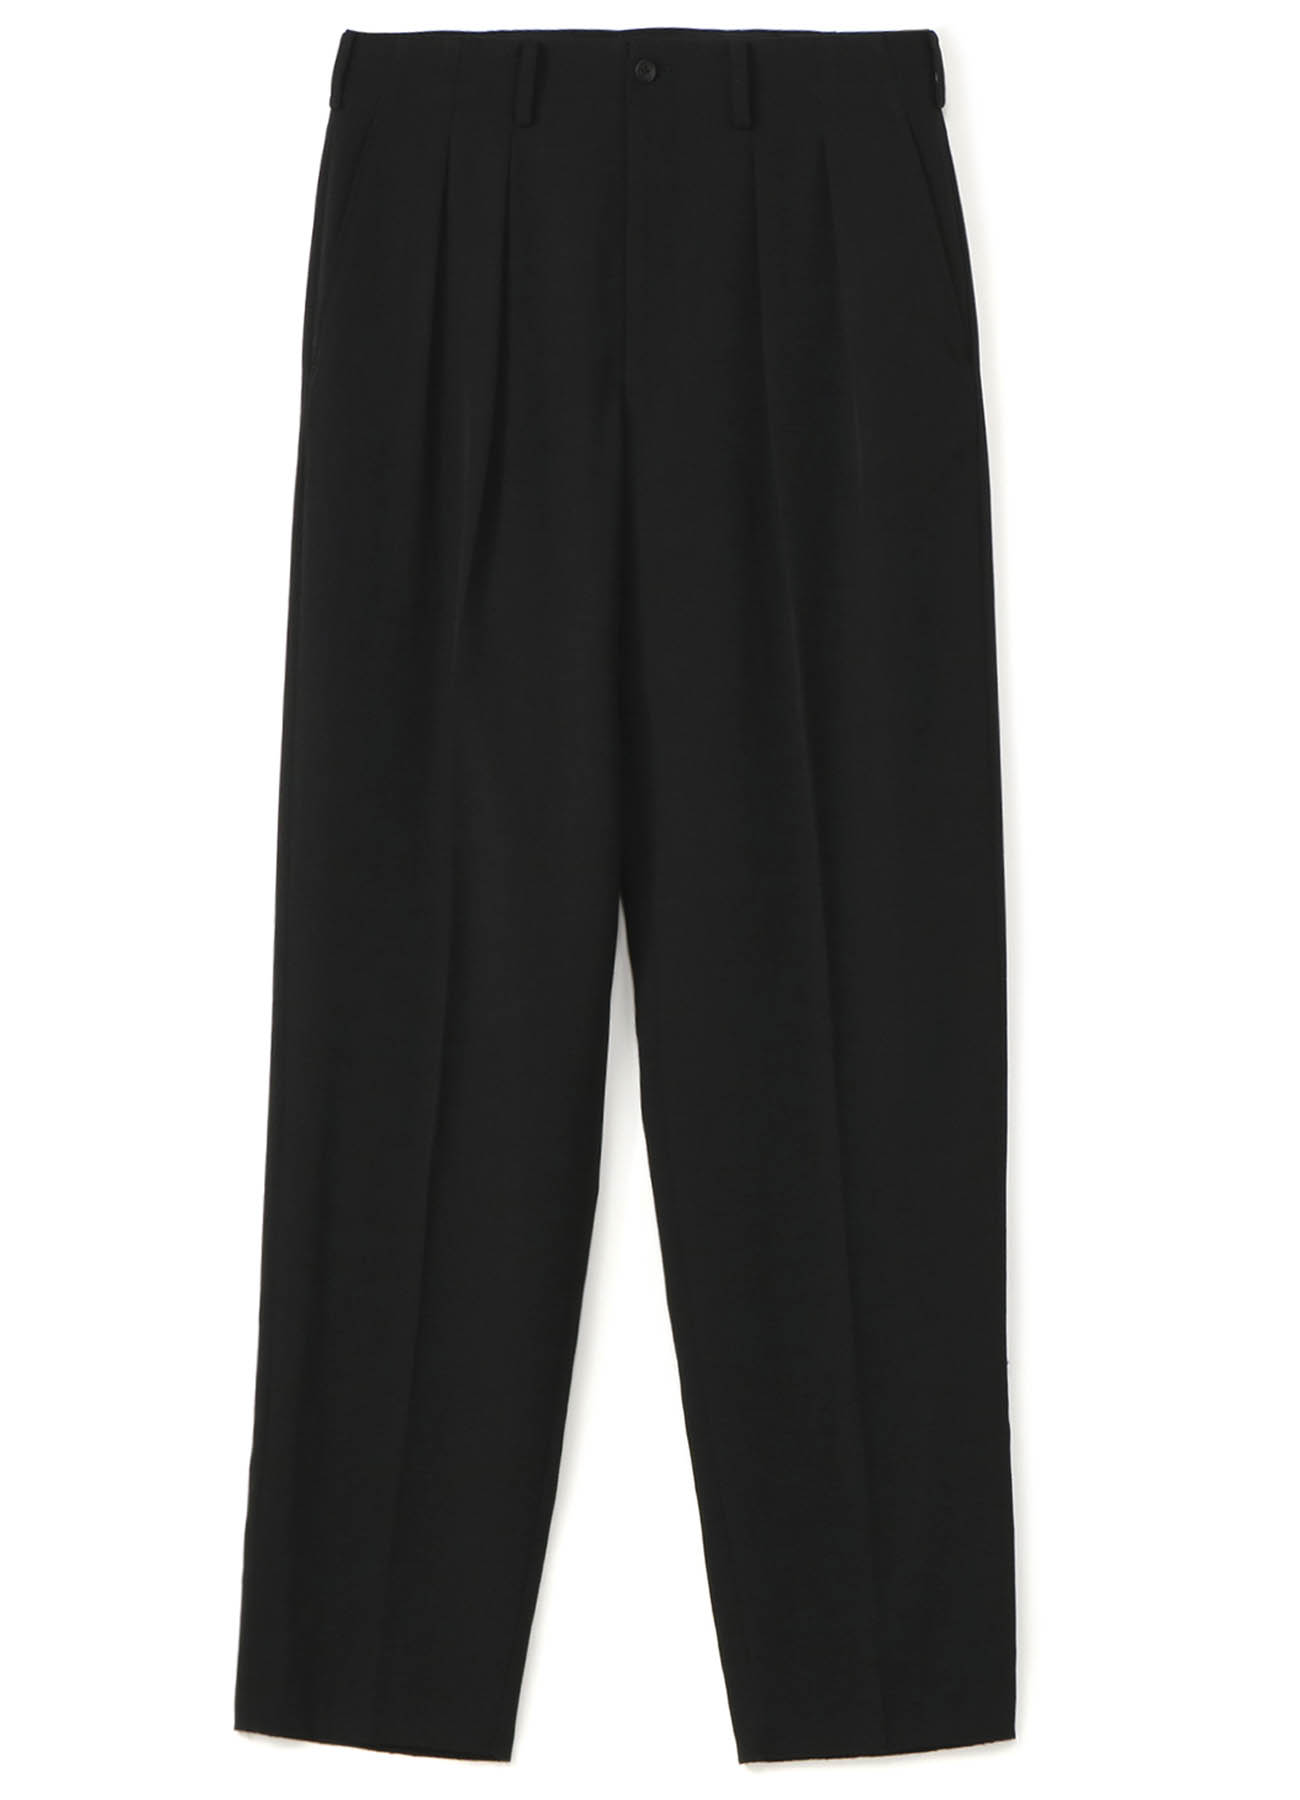 COSTUME D'HOMME SUITS GABARDINE 2TUCK PANTS